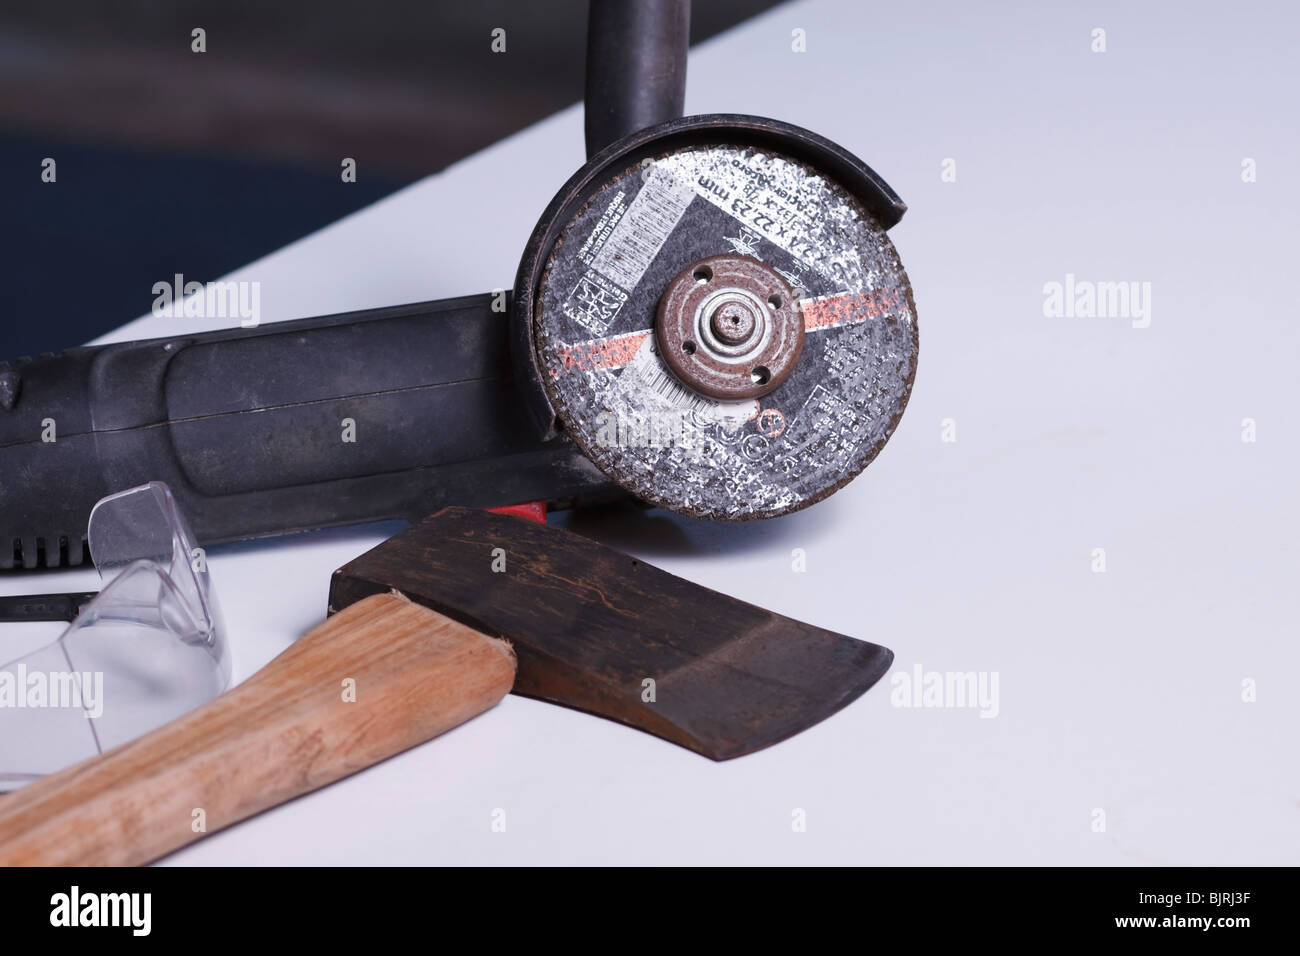 An angle grinder, axe and safety goggles. - Stock Image